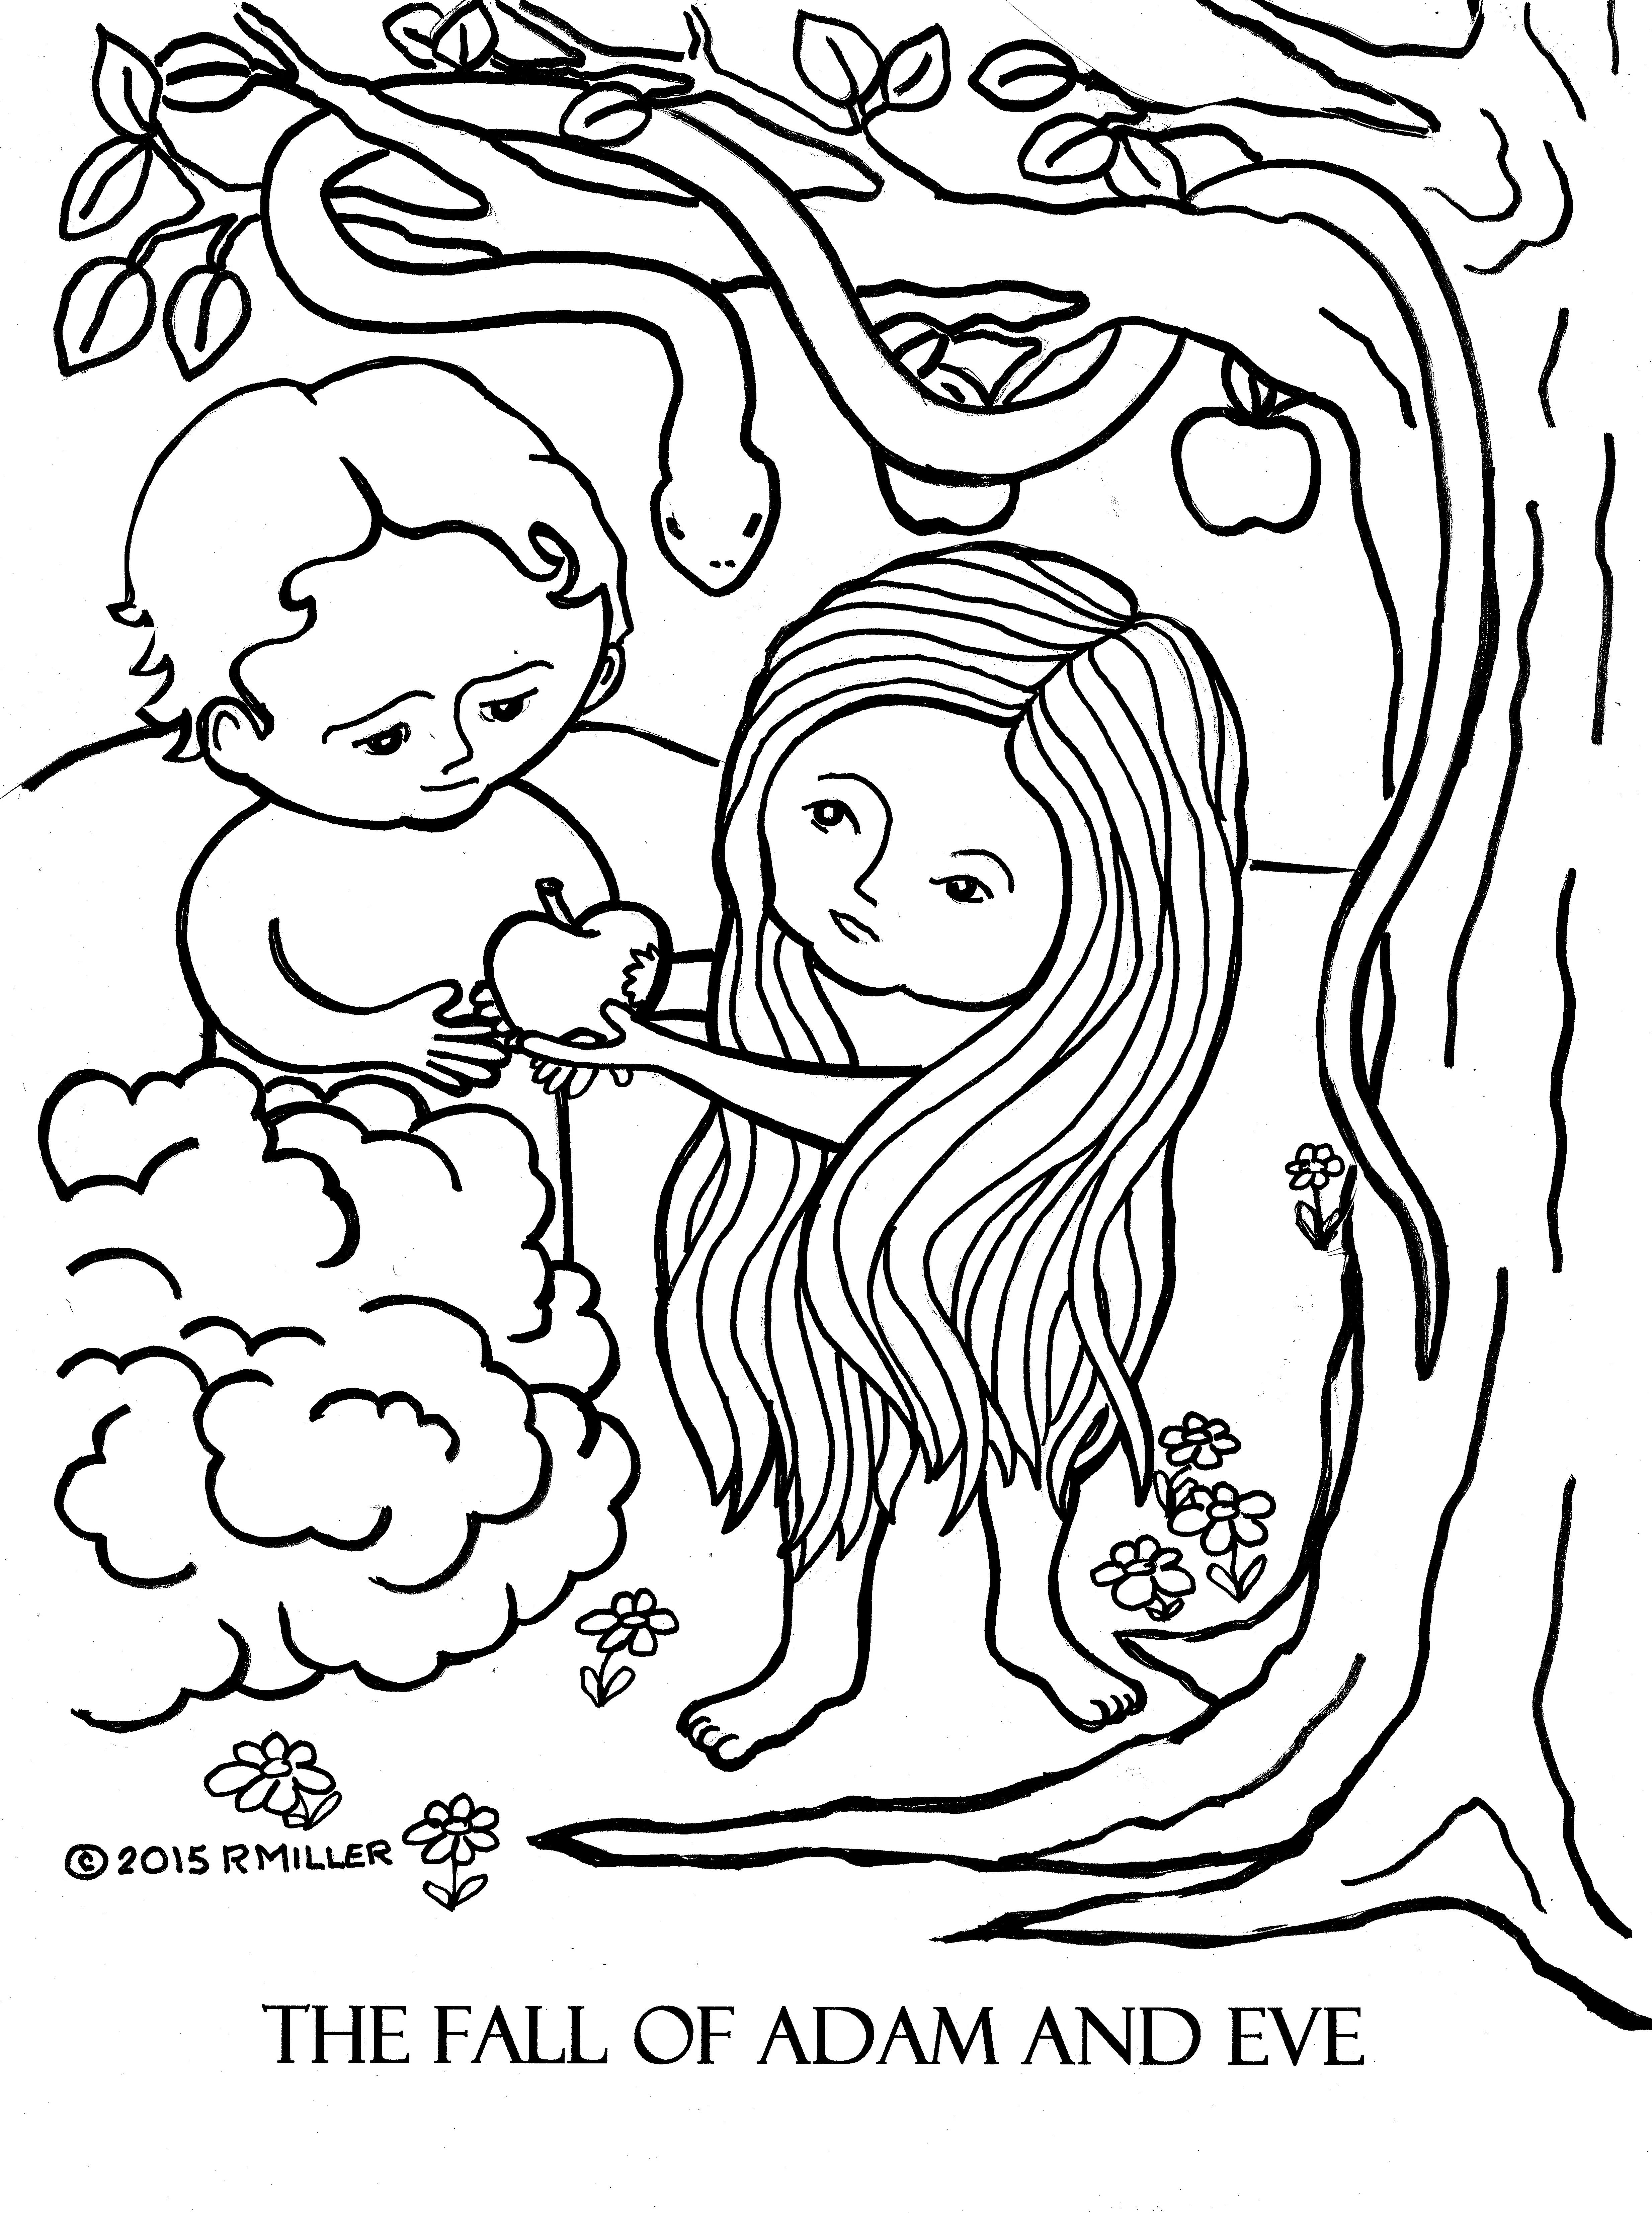 A Day 3 The Fall Of Adam And Eve Coloring Page Lg File HI RES